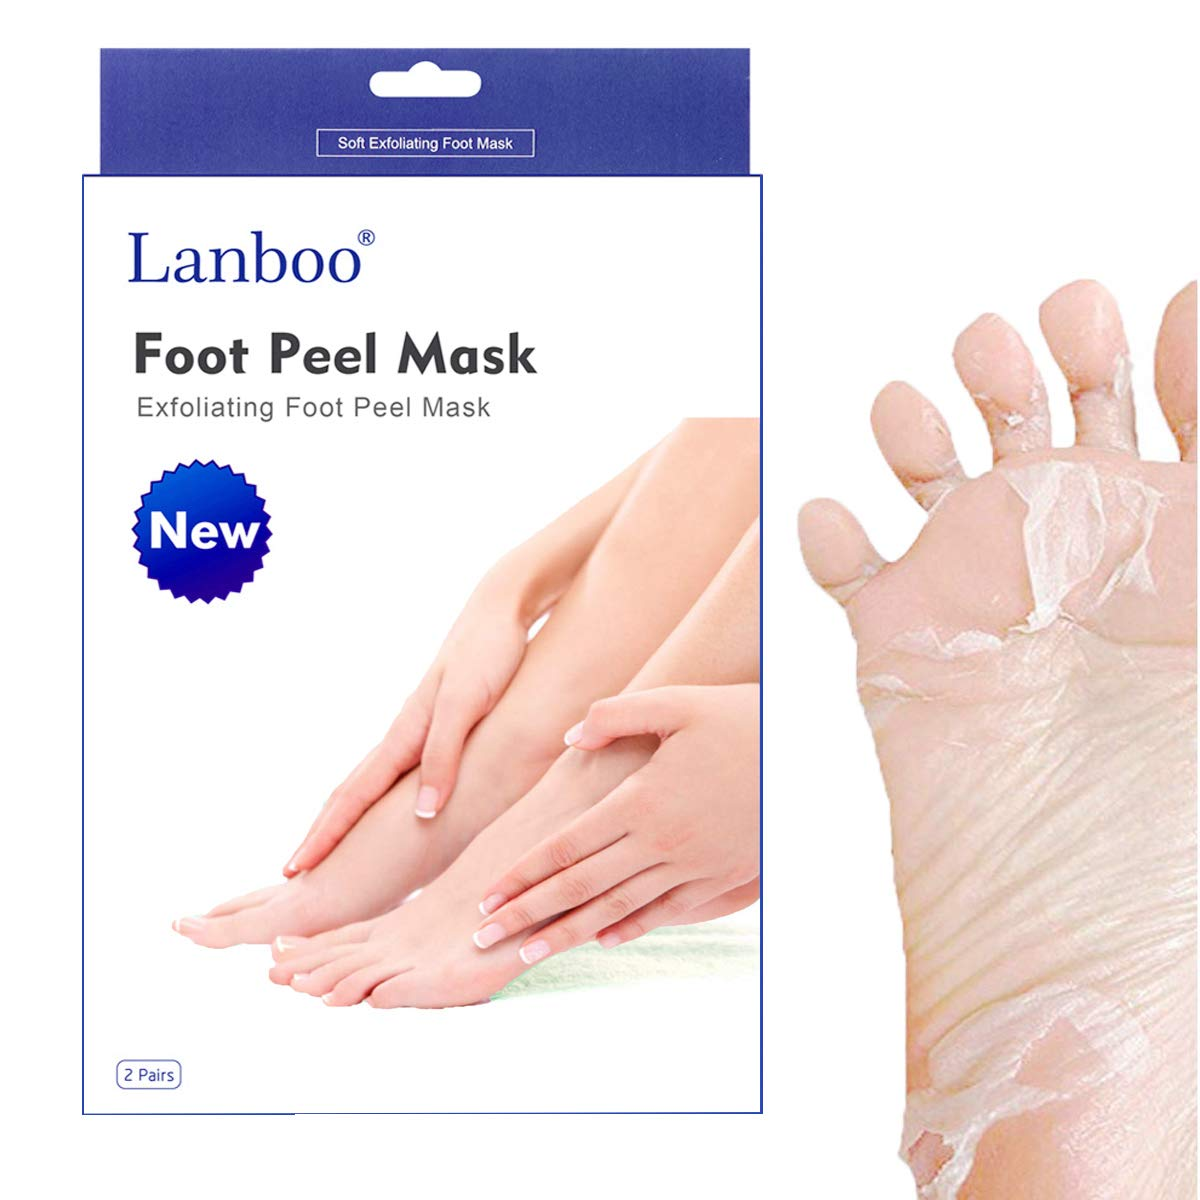 2 Pairs Lanboo Exfoliating Foot Peel Mask